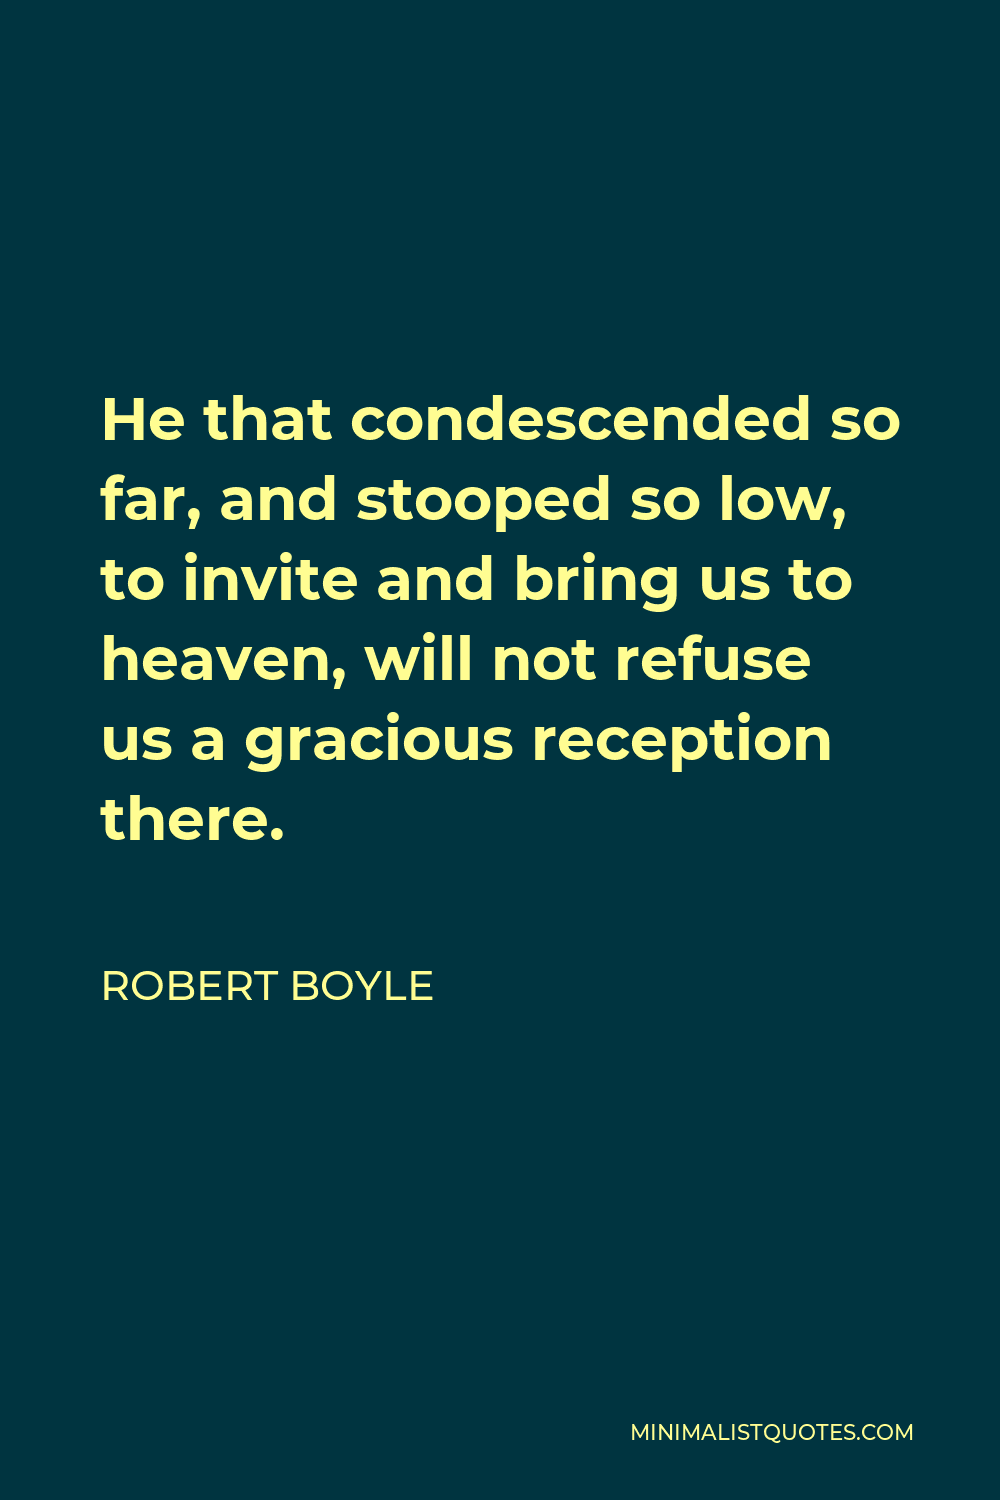 Robert Boyle Quote - He that condescended so far, and stooped so low, to invite and bring us to heaven, will not refuse us a gracious reception there.